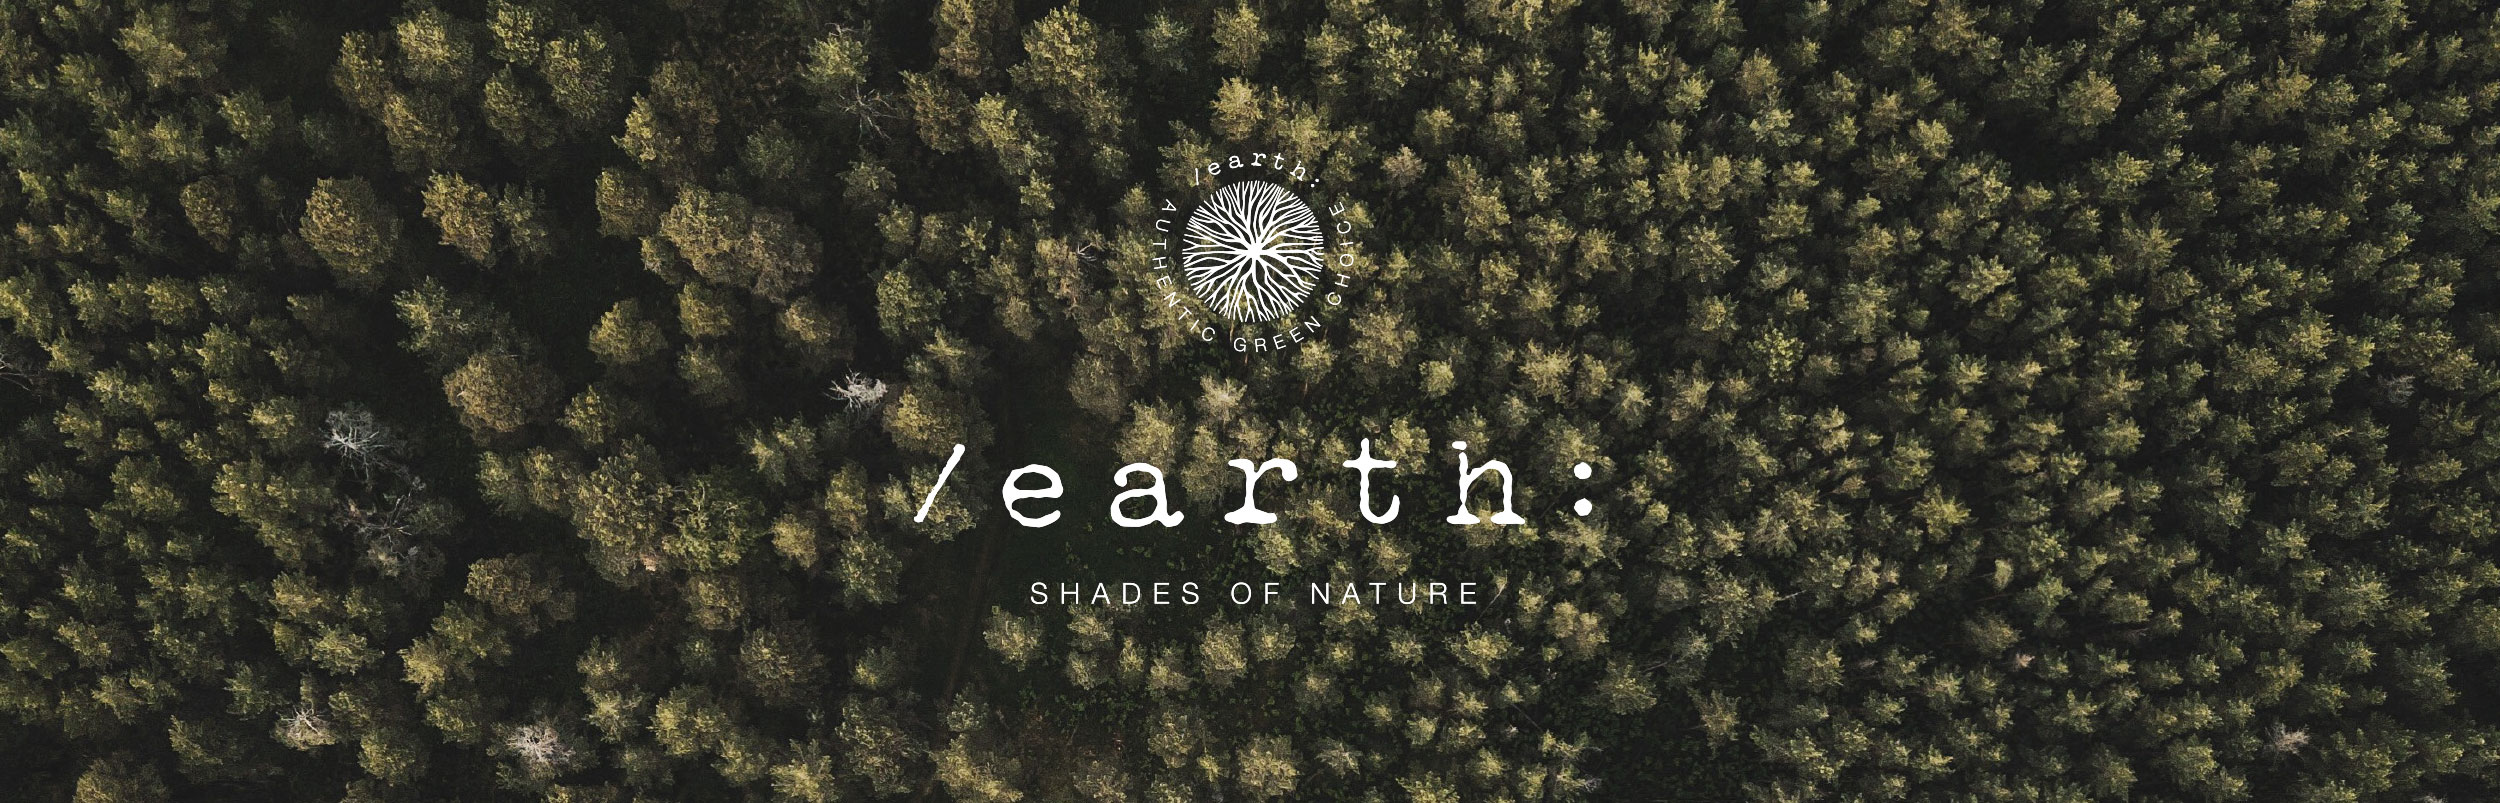 Earth, Shades of nature - Previa